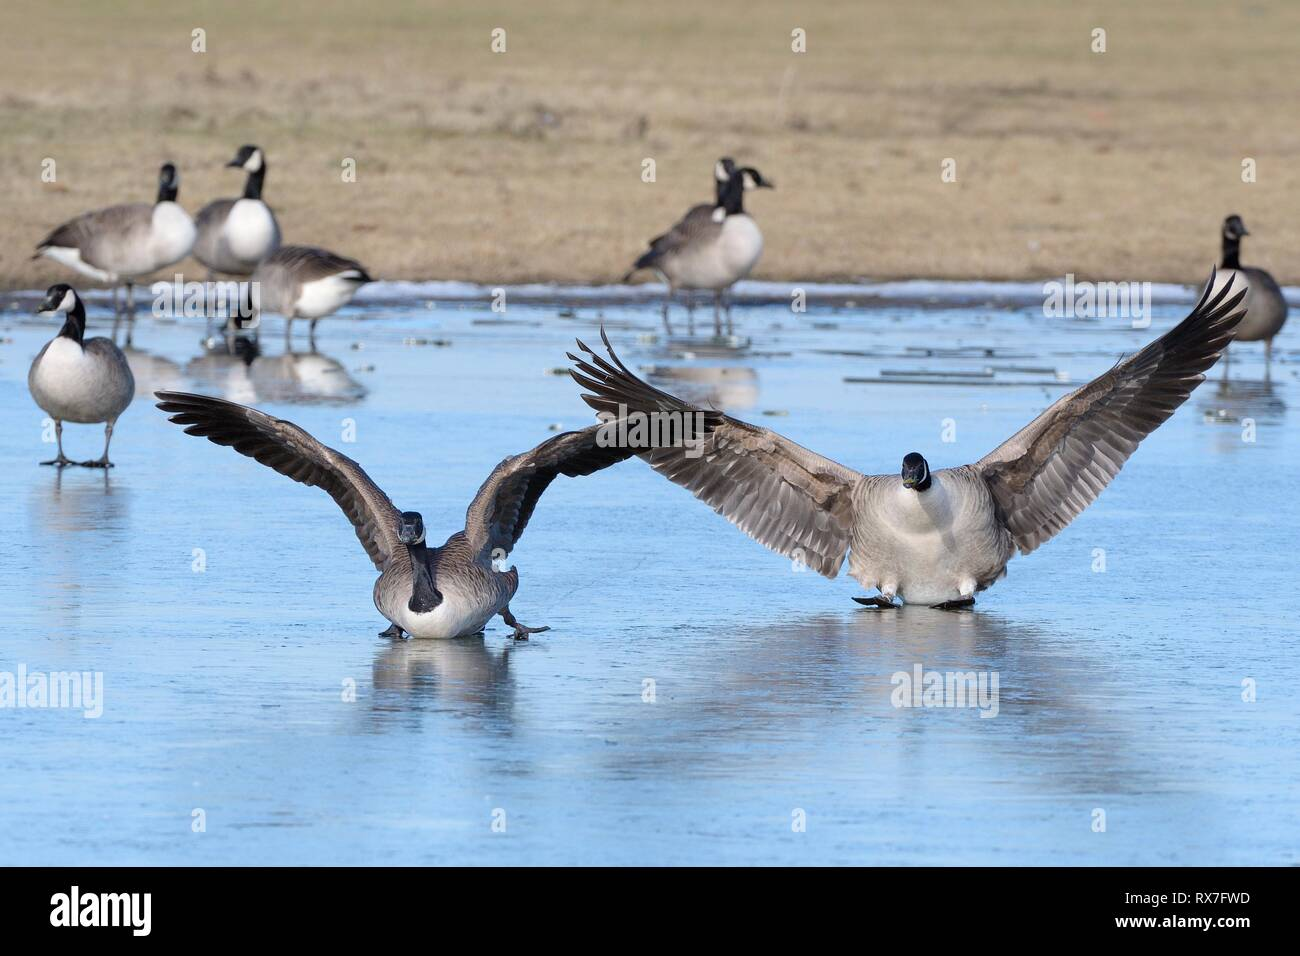 Two Canada geese (Branta canadensis) sliding on ice as they land on a frozen marshland pool with others in the background, Gloucestershire, UK. - Stock Image